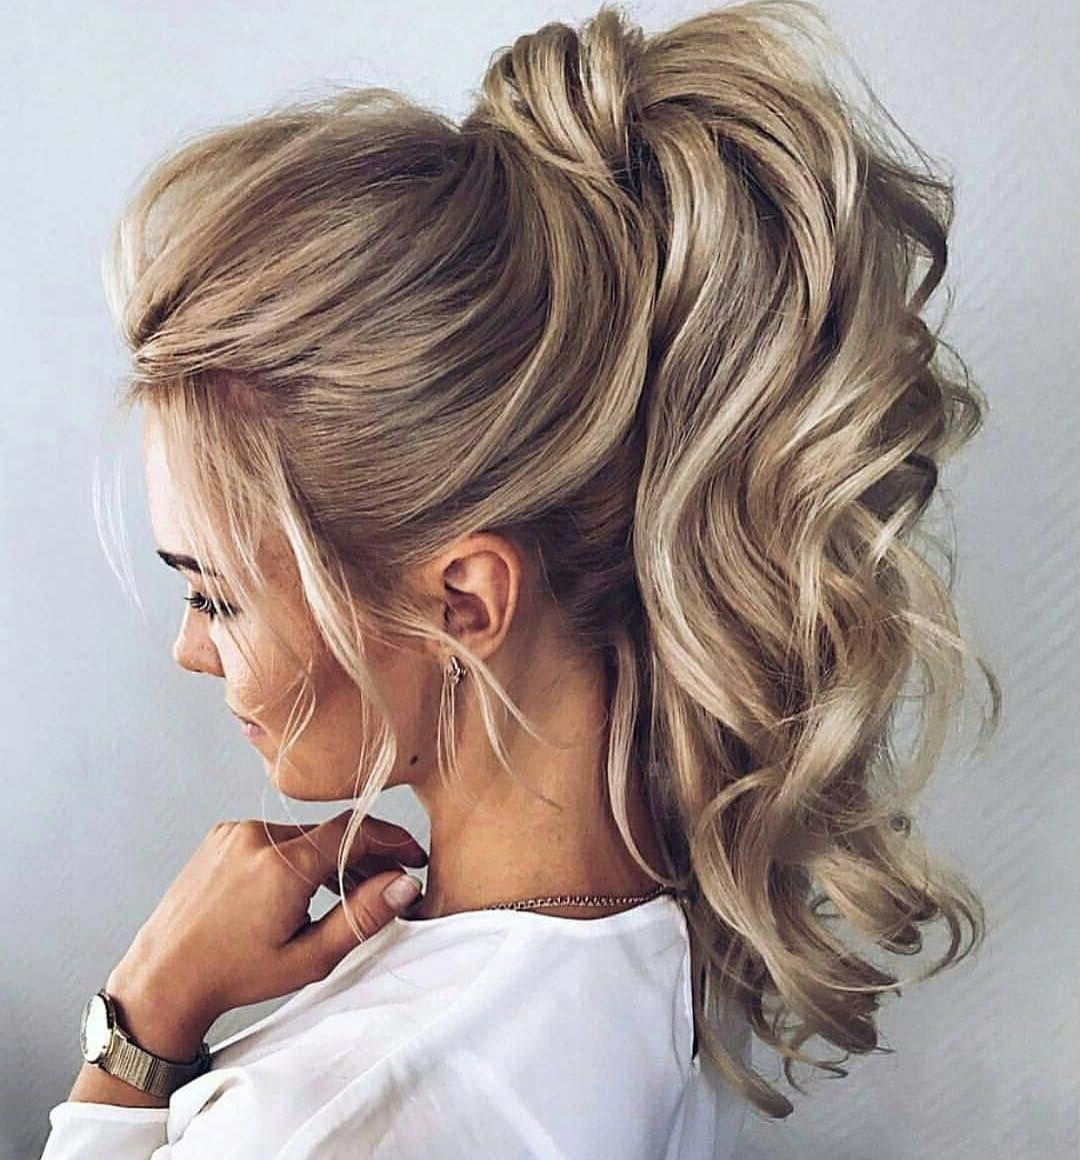 Easy Wedding Guest Hairstyle For Long Hair Weddingguesthair Easy Wedding Guest Hairstyles Guest Hair Wedding Hairstyles Updo